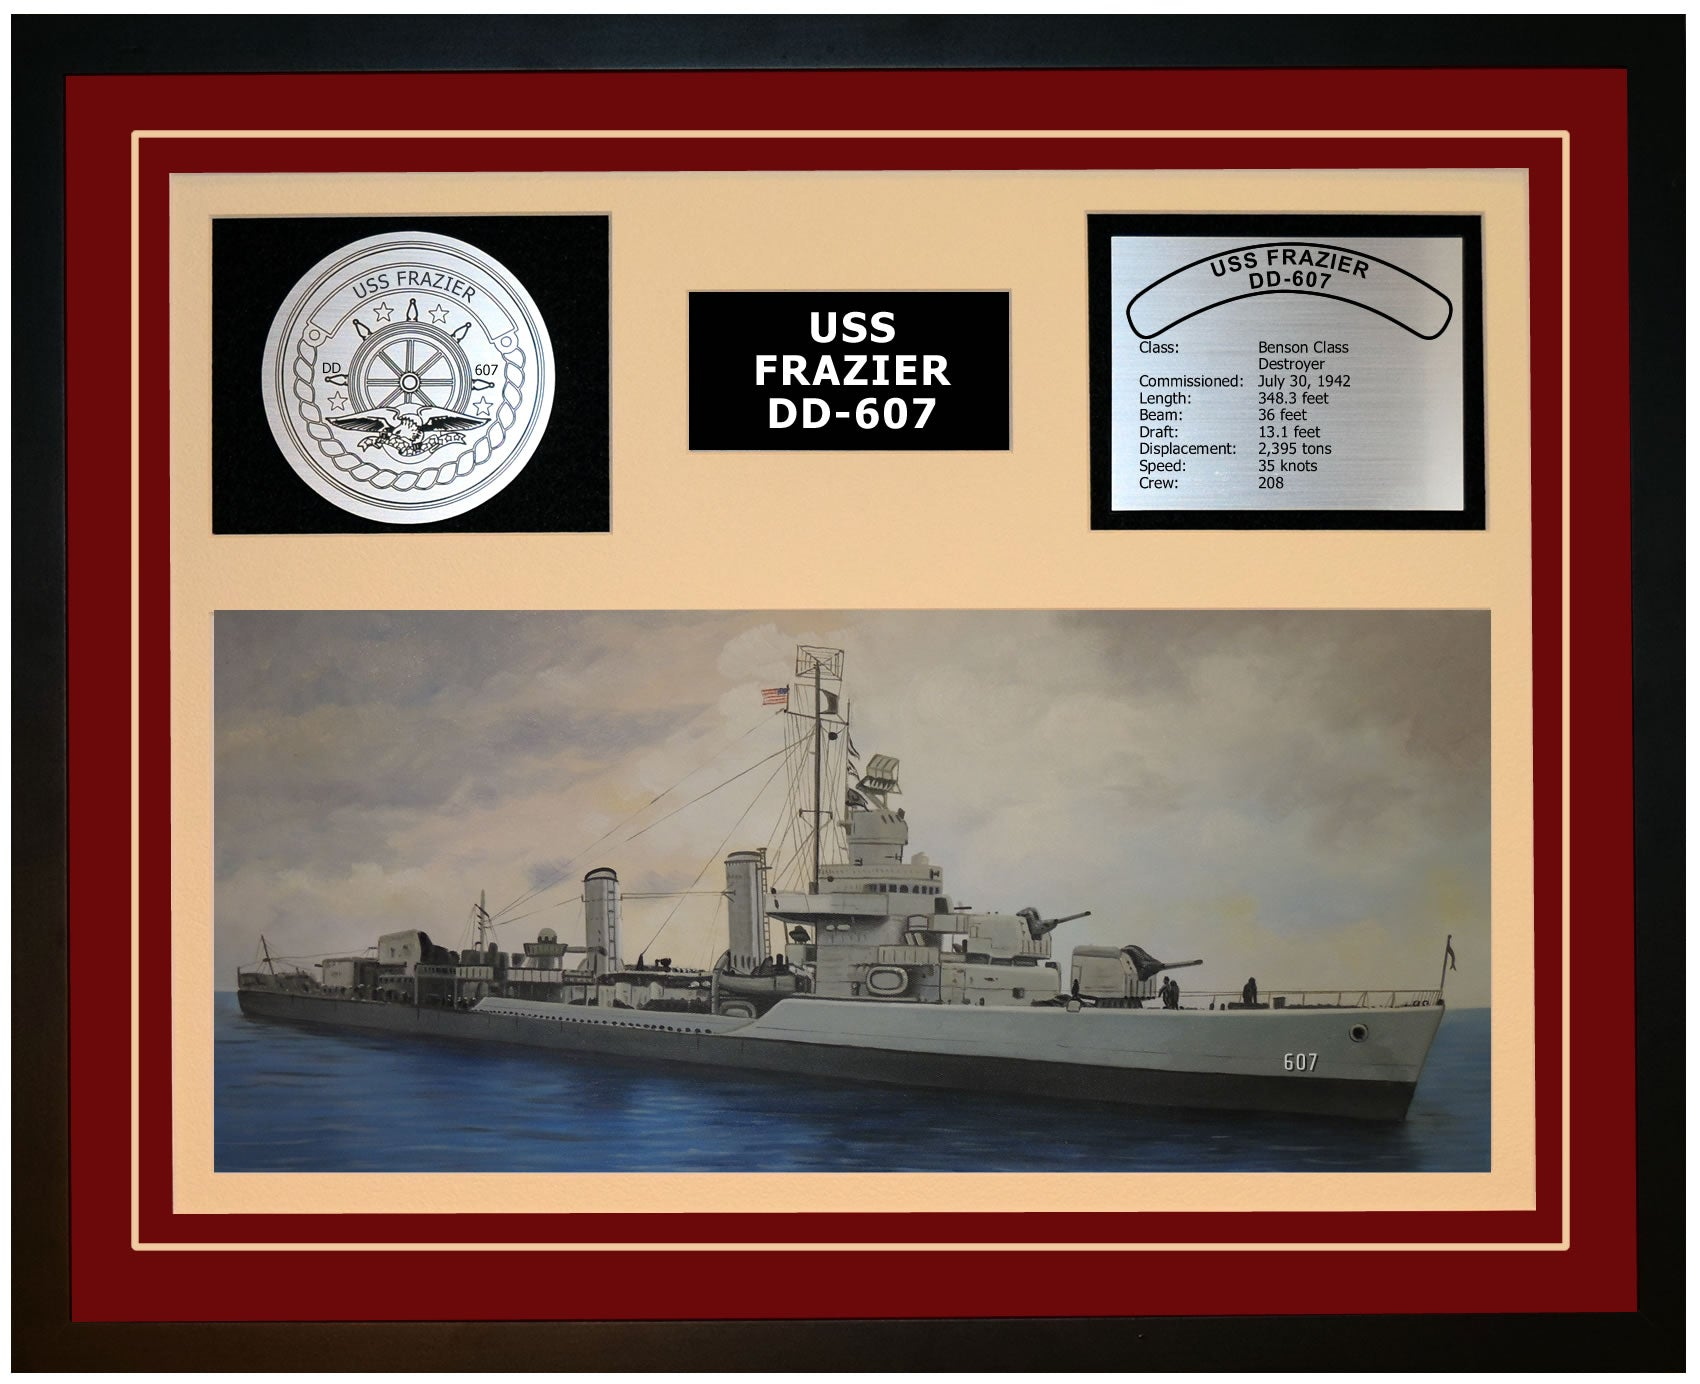 USS FRAZIER DD-607 Framed Navy Ship Display Burgundy